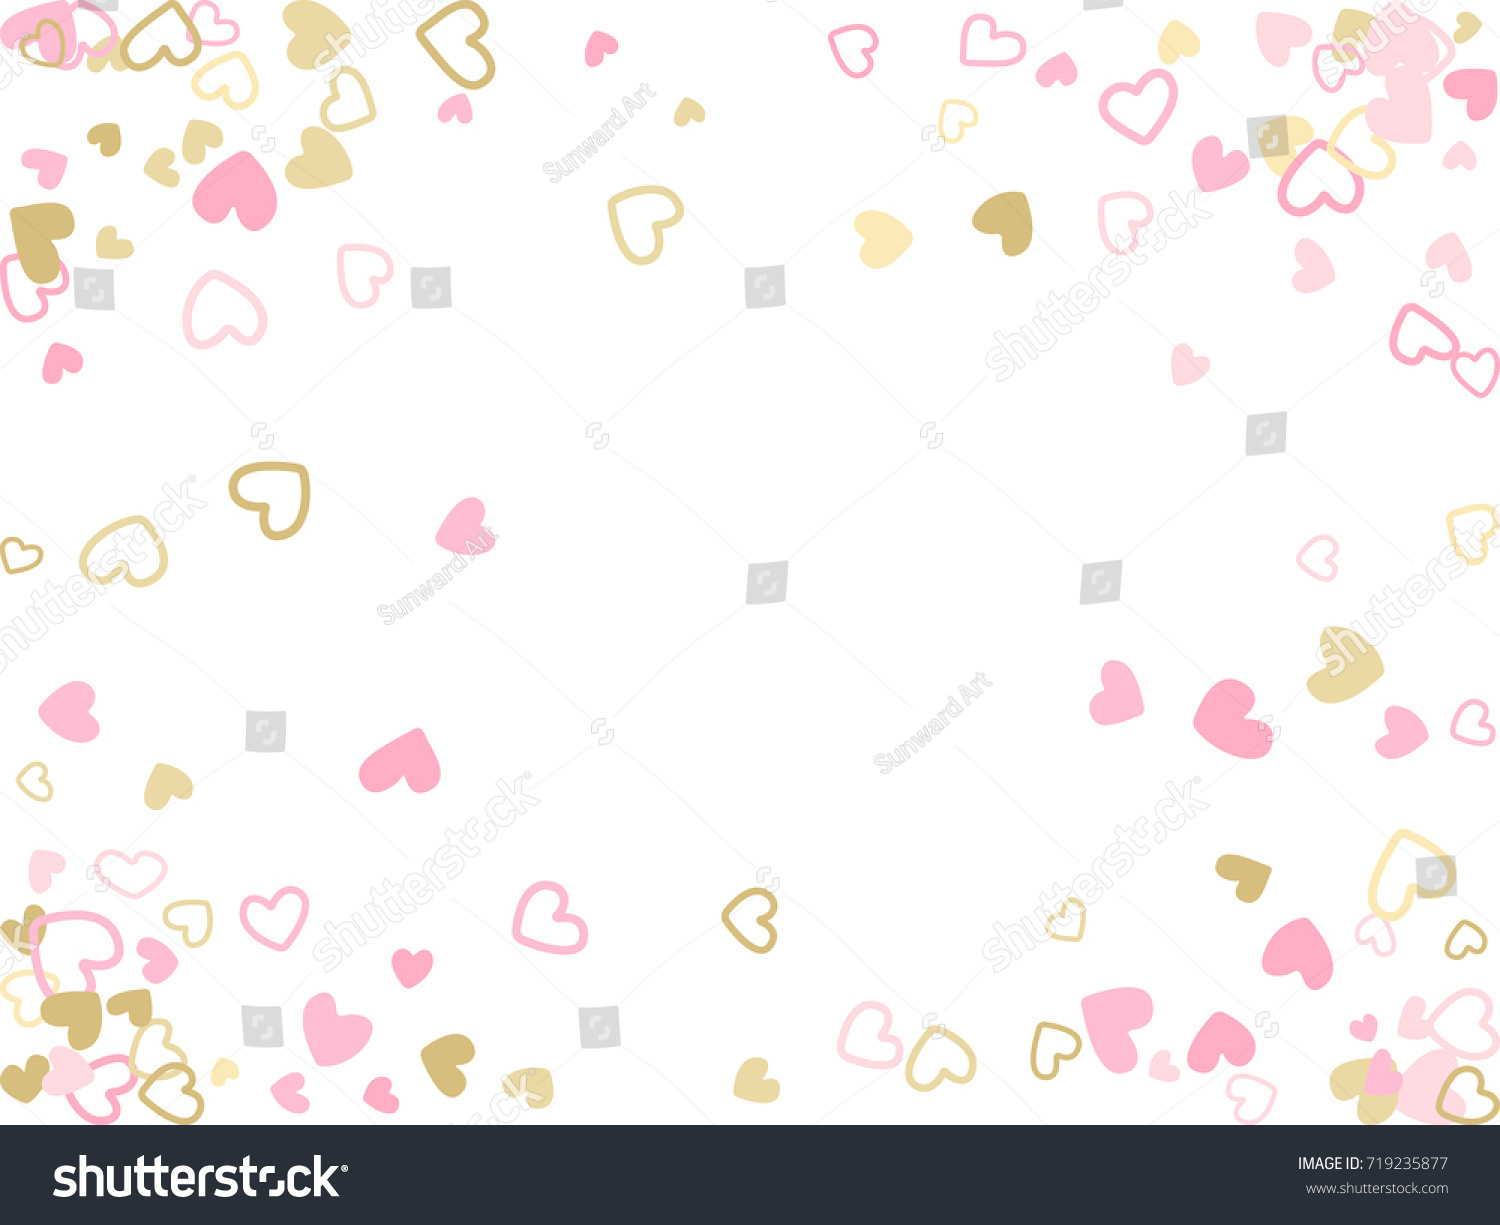 Heartbeat Pattern Heartbeat Vector Pattern Vector: Doodle Heart Border Vector Pattern Background Stock Vector